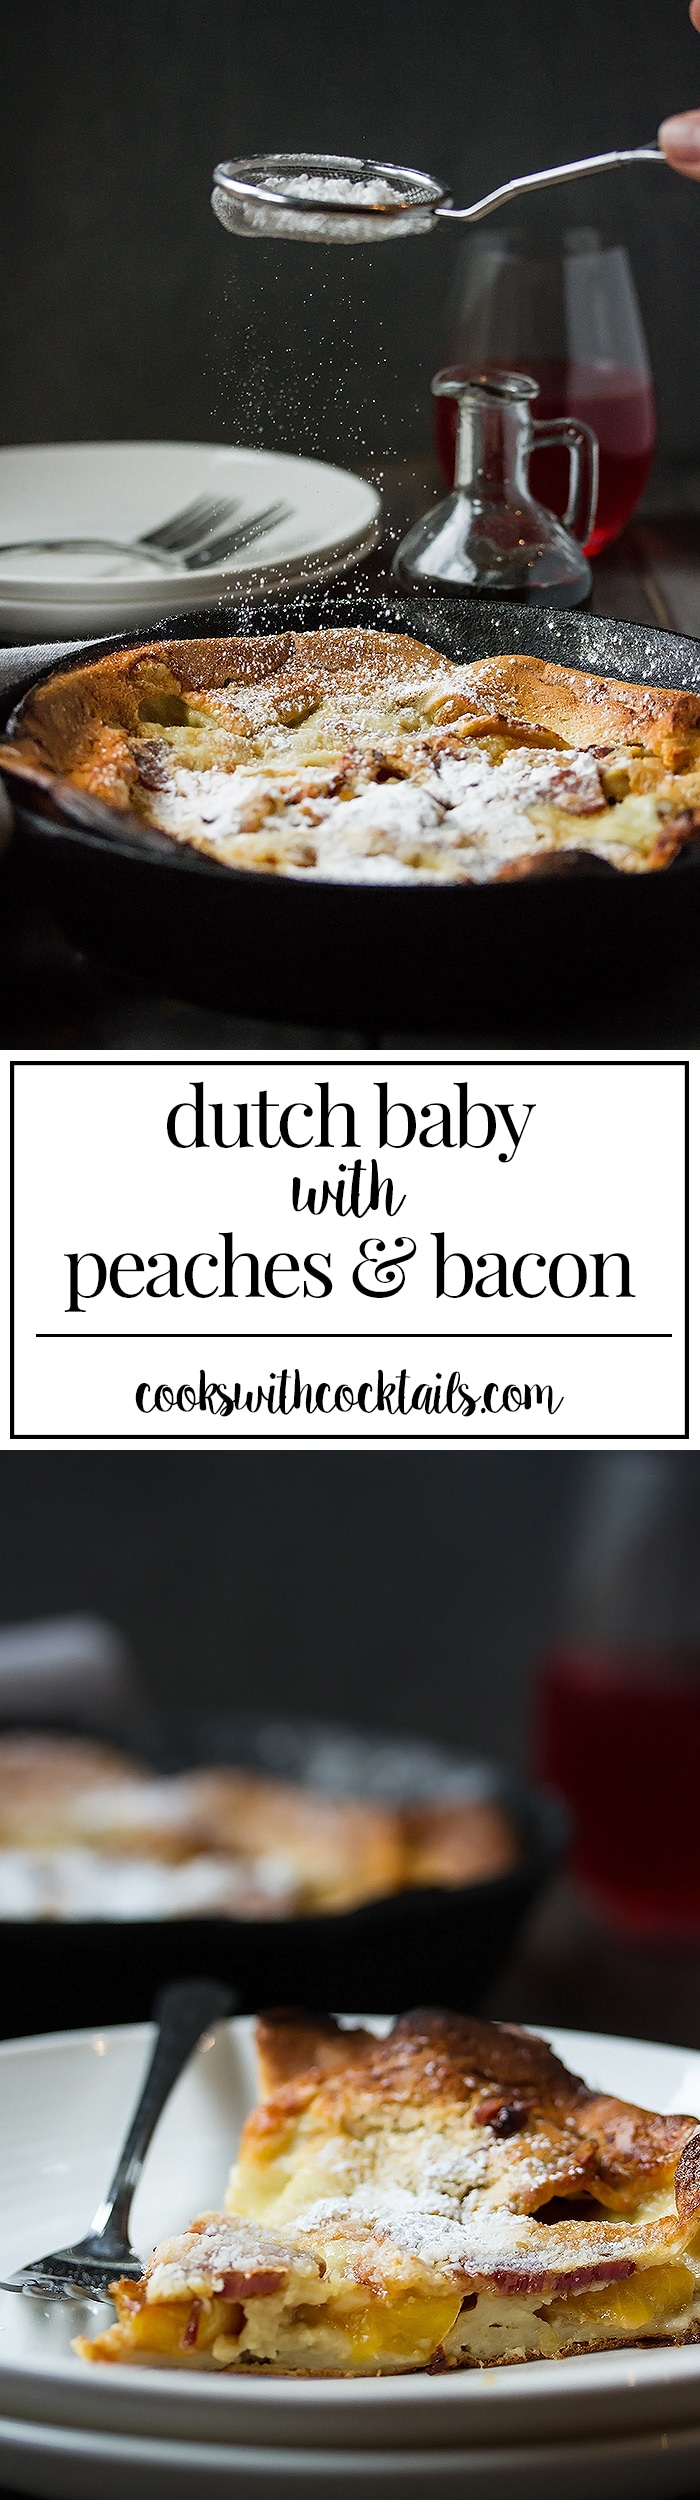 Fluffy Bacon & Peach Dutch Baby Recipe - the Ultimate Brunch Pancakes (2)